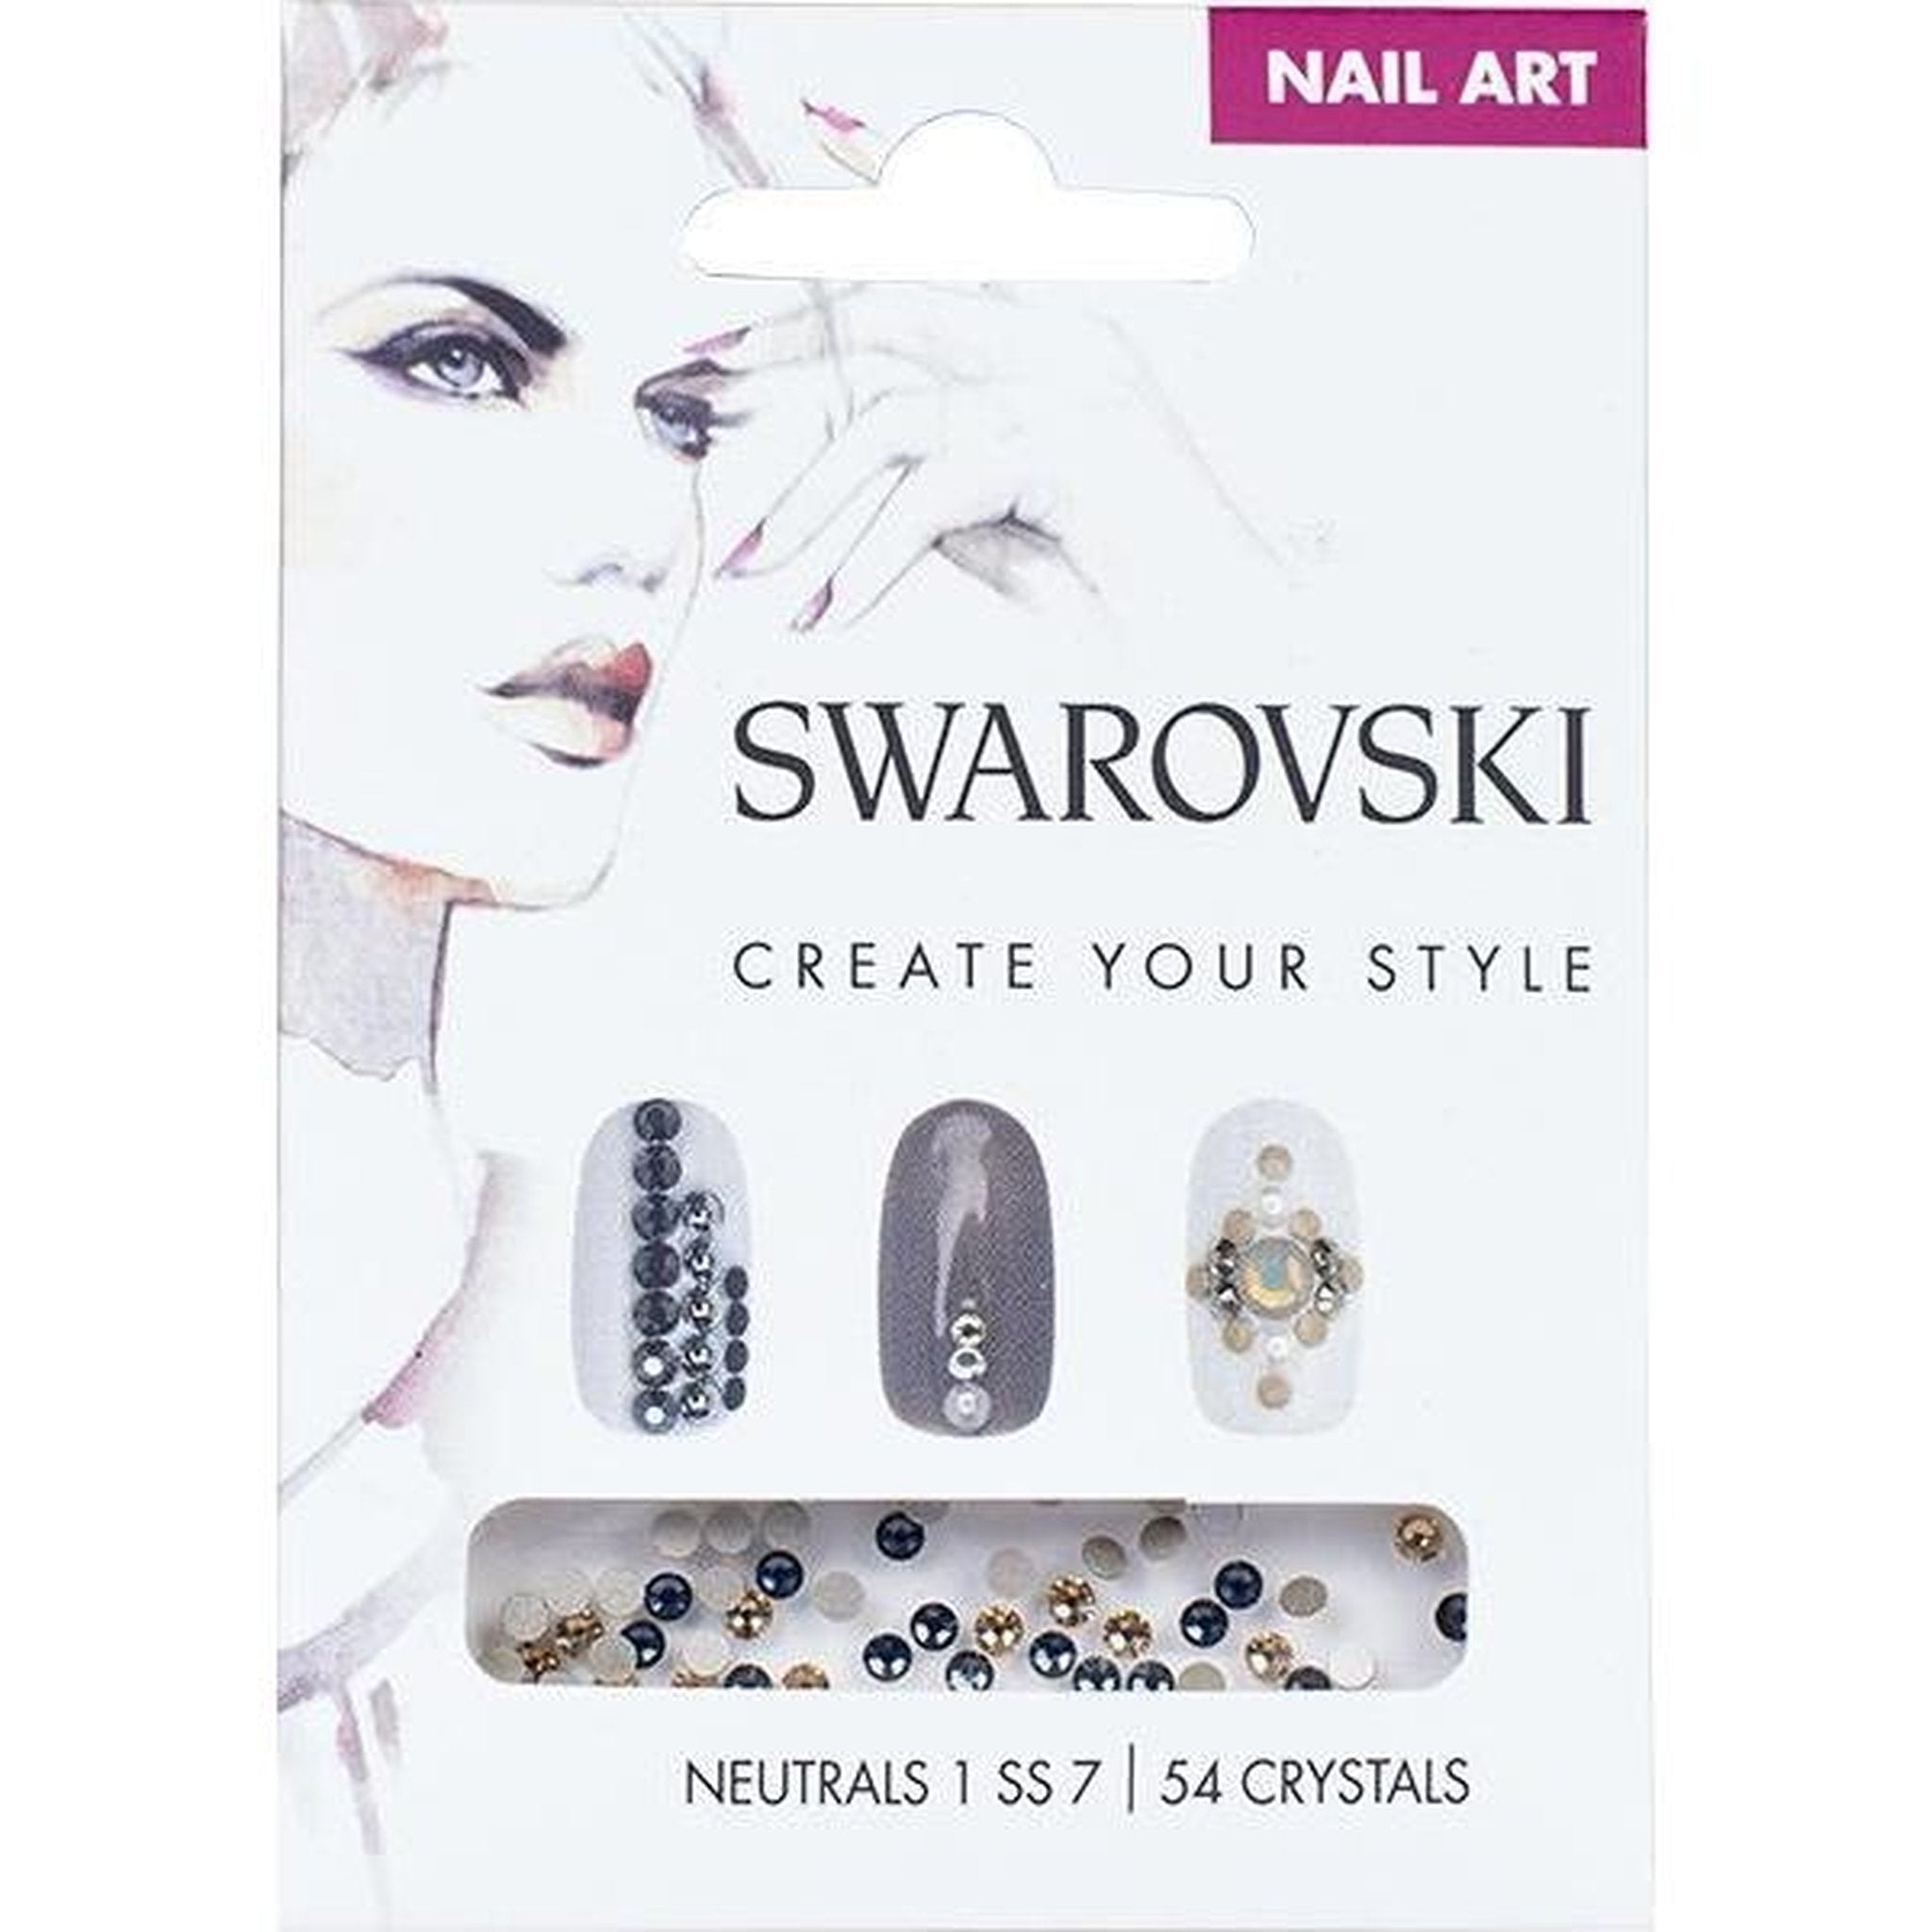 SWAROVSKI NAIL ART LOOSE CRYSTALS - NEUTRAL 1 SS7-Gel Essentialz